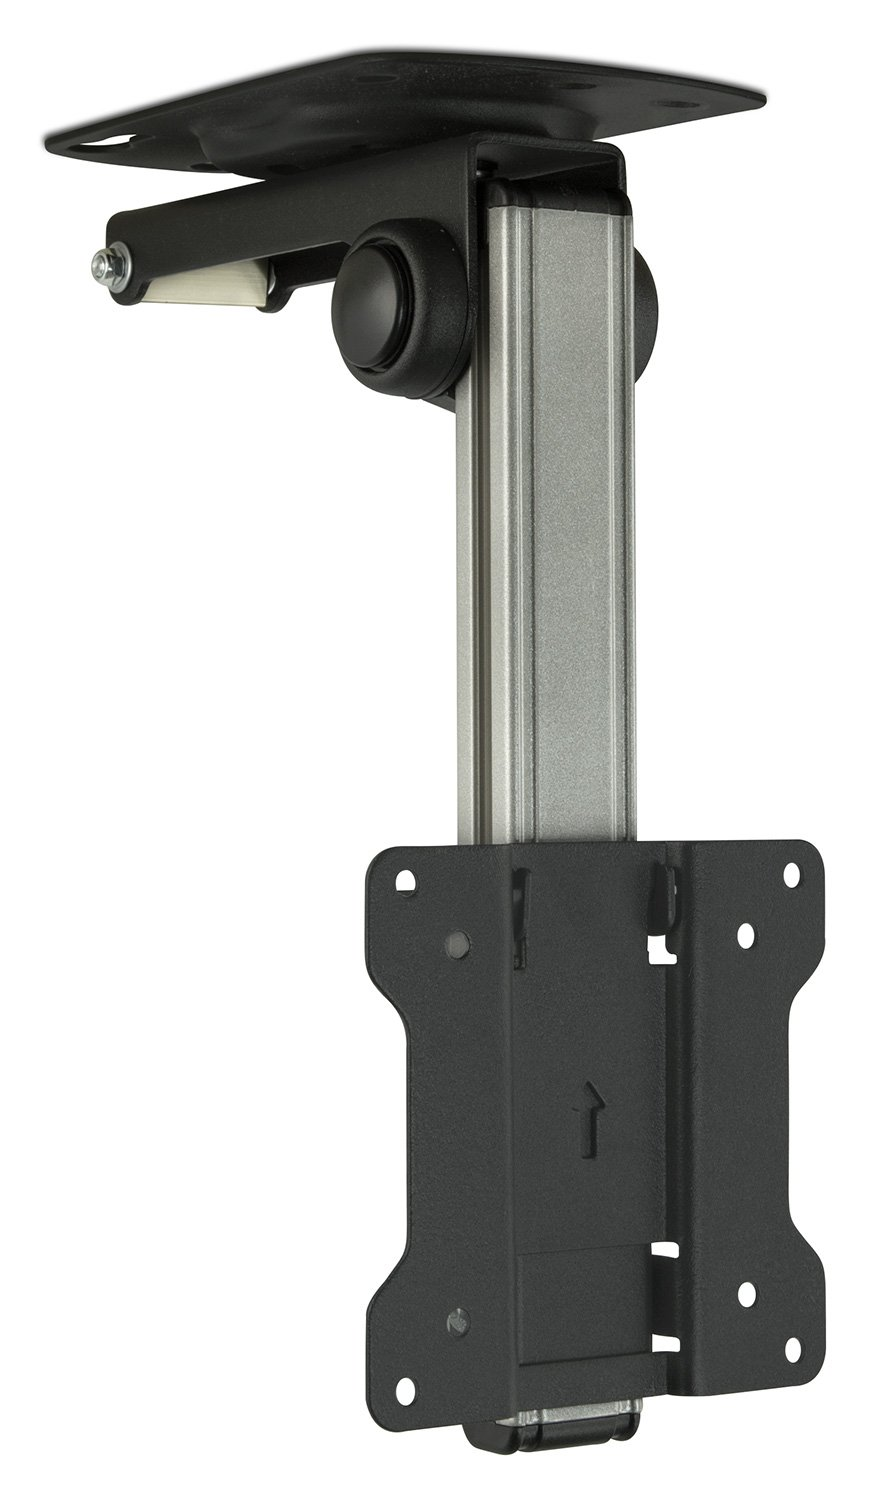 Mount-It! Under Cabinet TV Ceiling Mount - Fold, Retract, Tilt, Swivel, Fits 13-27 Inch LCD LED Monitors and Flat Screens up to VESA 100x100 and 44 Lbs, LCD-CM211 FBA_MI-CM211